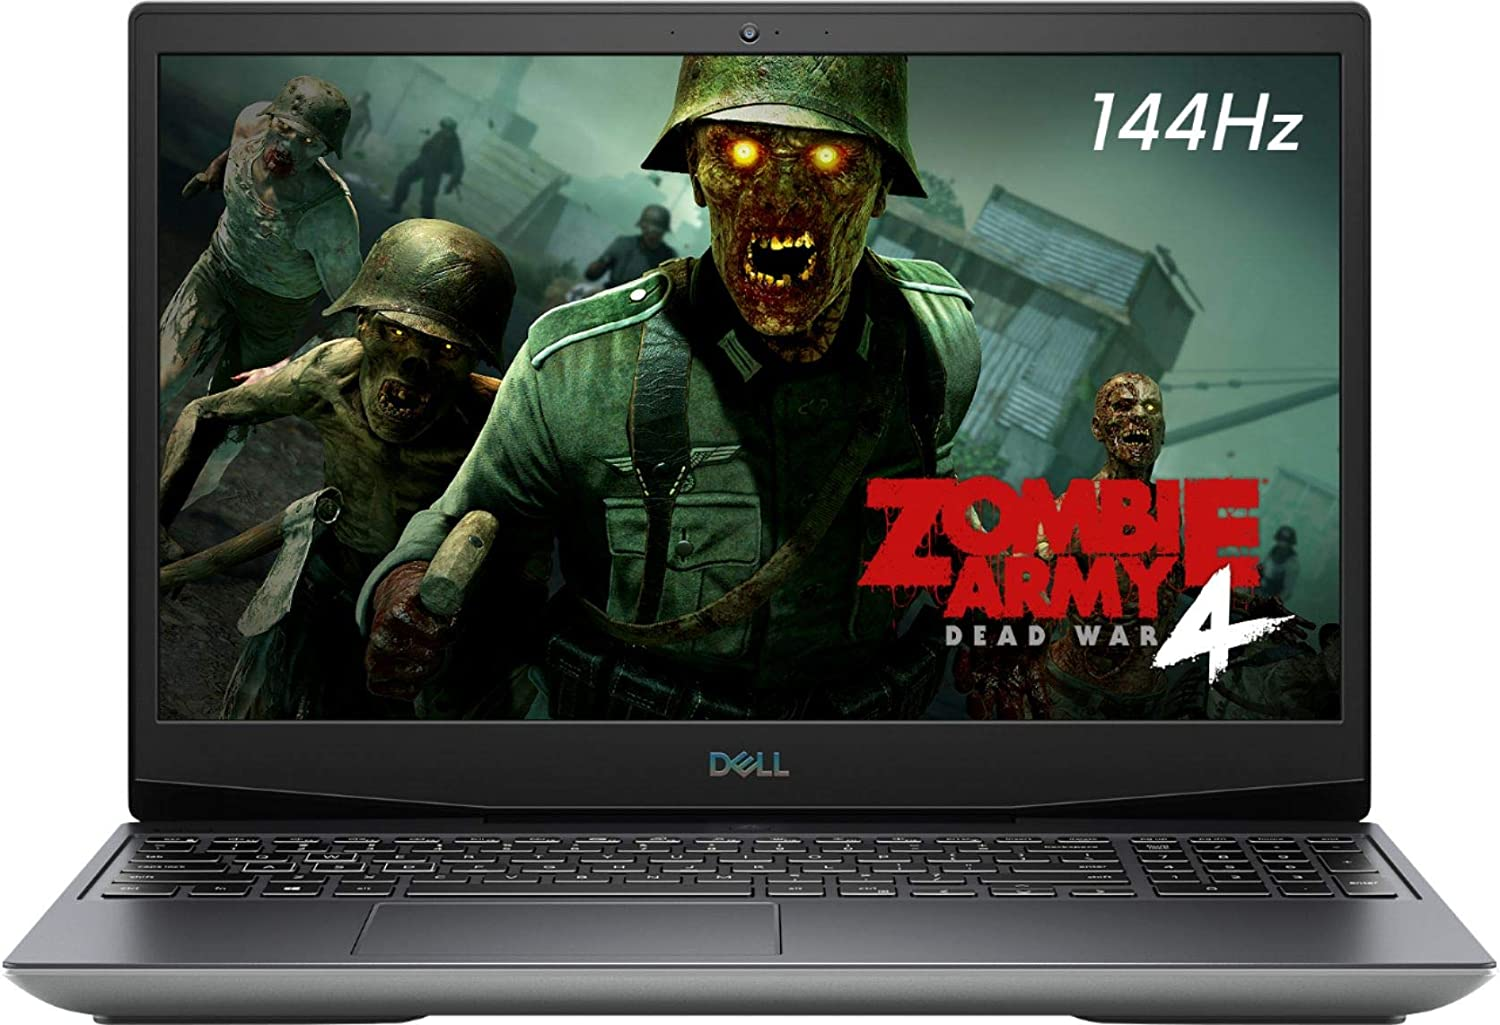 "Dell G5 15.6"" VR Ready FHD Gaming Laptop, AMD Ryzen 7 4800H (Beat i7-10750H), Webcam, RGB Backlit Keyboard, USB-C, HDMI, Nahimic 3D Audio, AMD Radeon RX 5600M, Win 10 (16GB RAM